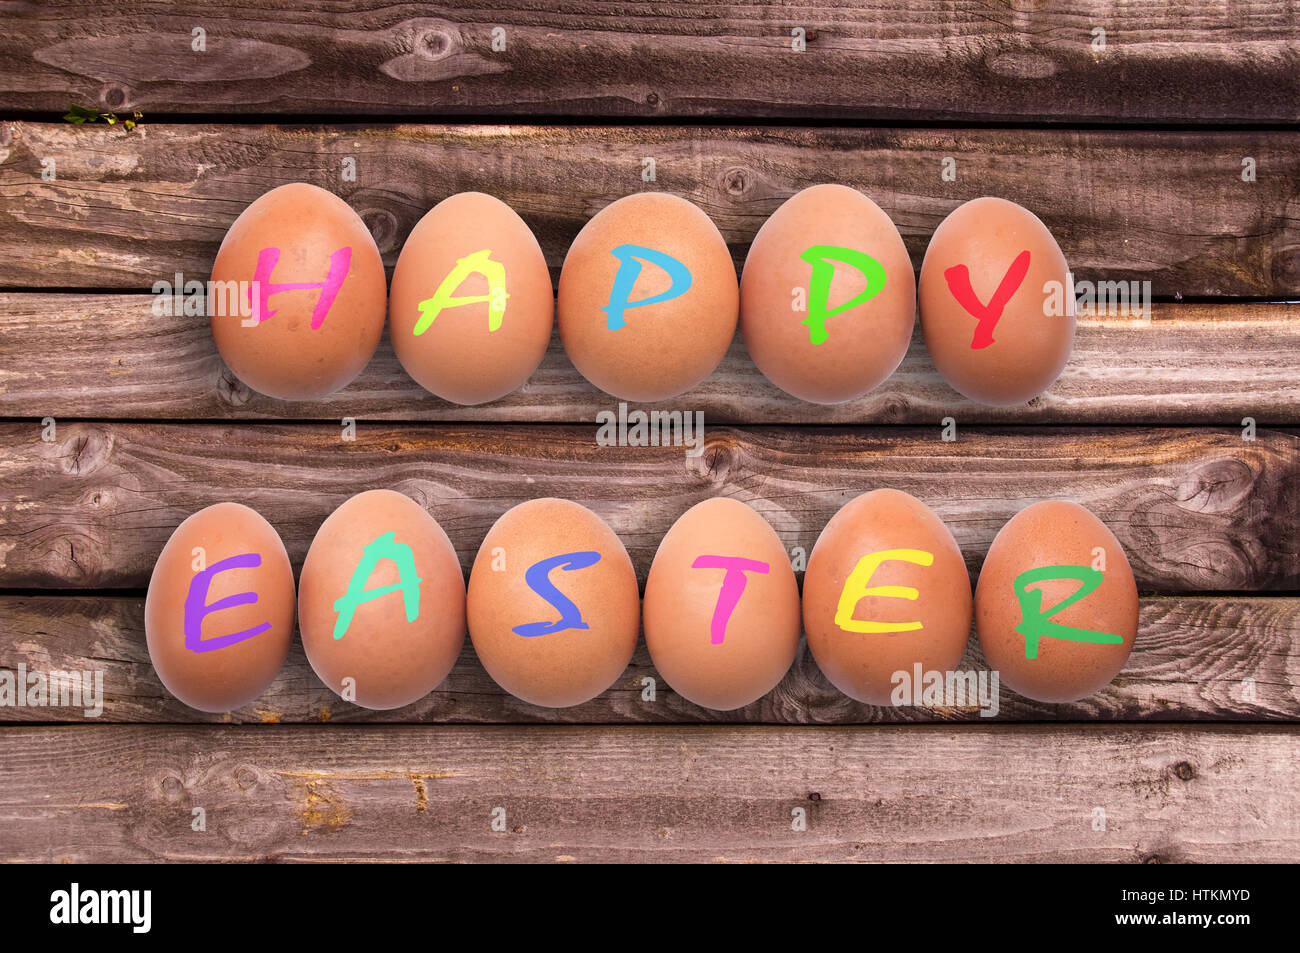 Happy easter written on eggs on wooden planks background - Stock Image